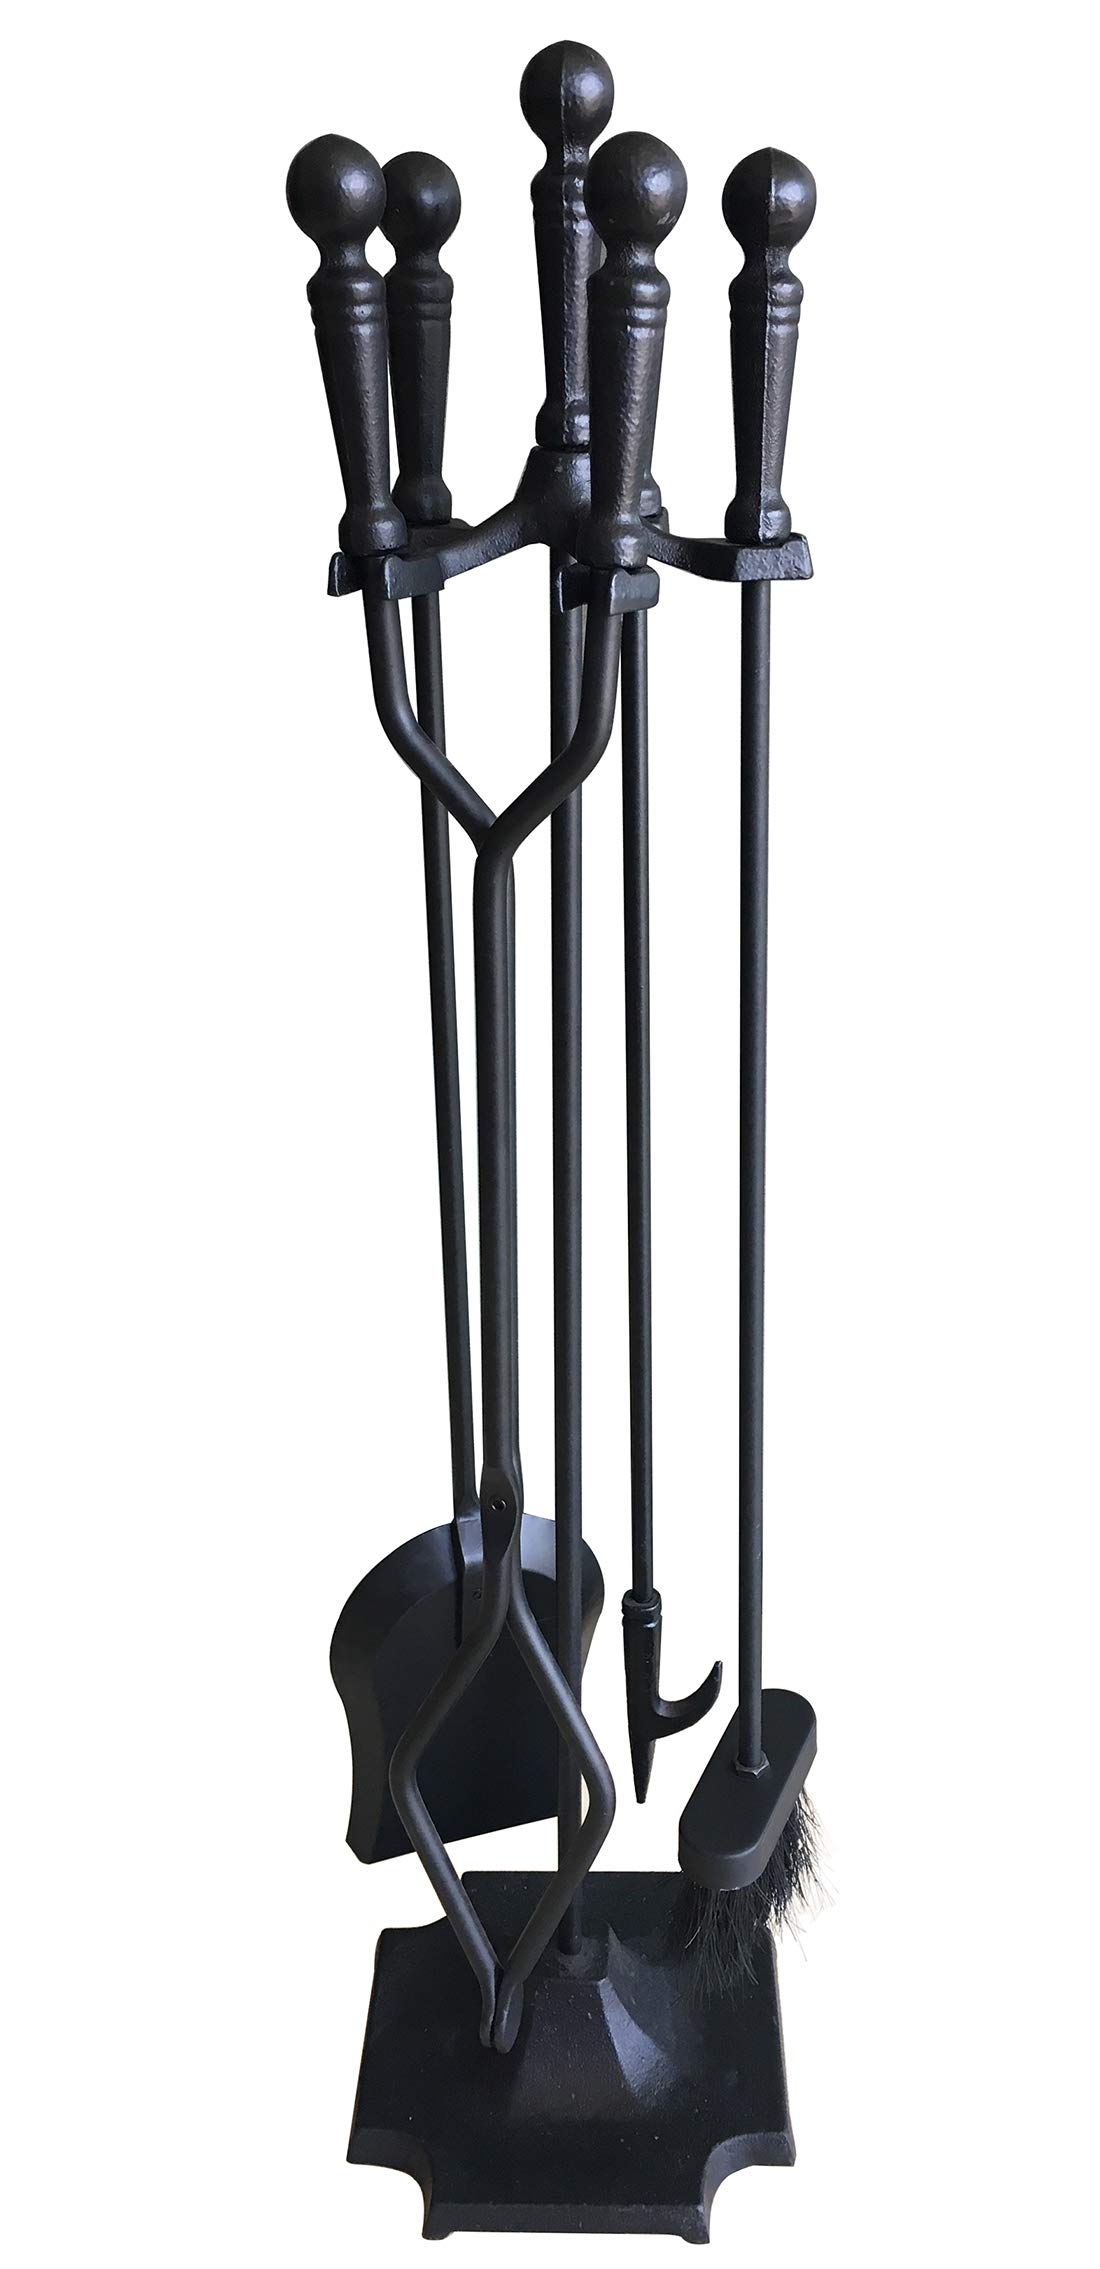 Tosnail 5 Pieces Wrought Iron Fireplace Tools Set - Brush, Shovel, Tong, Poker and Stand Base by Tosnail